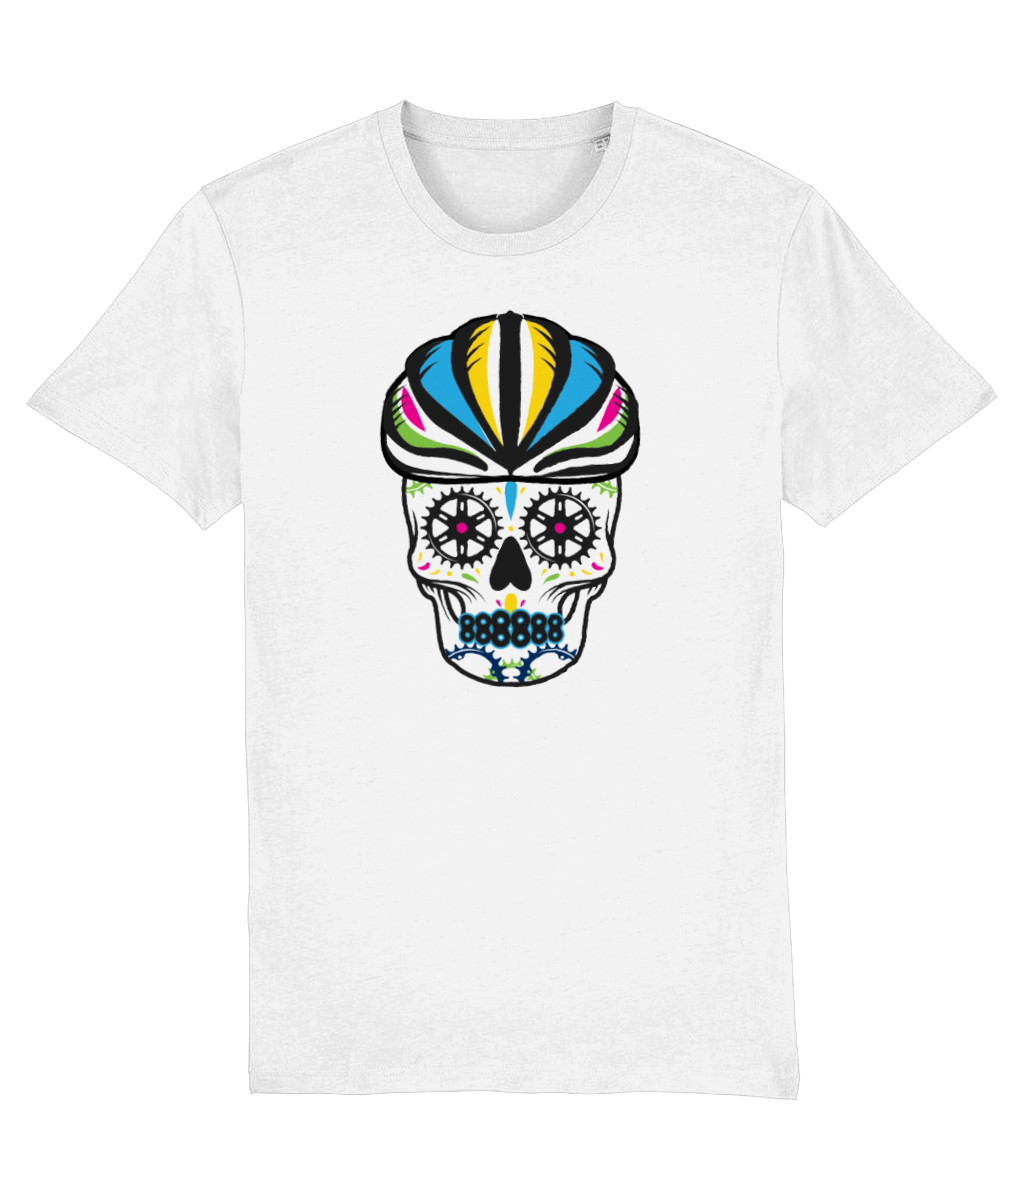 Colourful Cyclist Sugar Skull T-Shirt